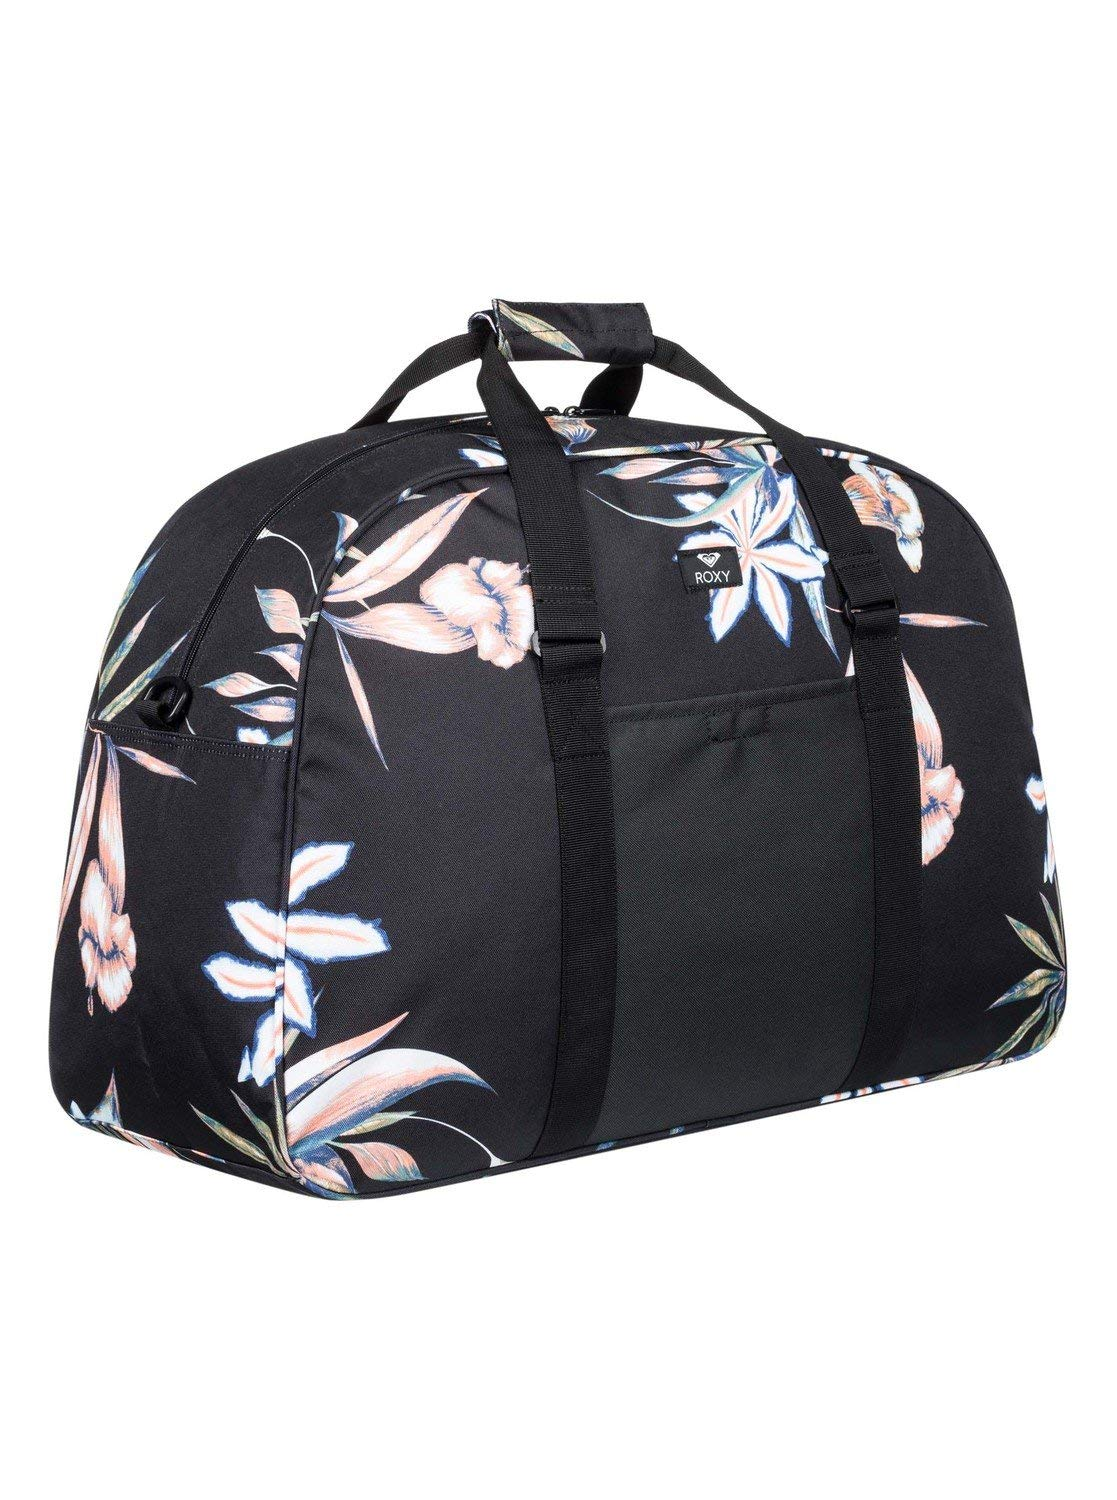 b3f763a54584d Amazon.com  Roxy Womens Feel Happy 40L - Large Sports Duffle Bag - Women -  One Size - Black True Black Delicate Flowers One Size  Sports   Outdoors